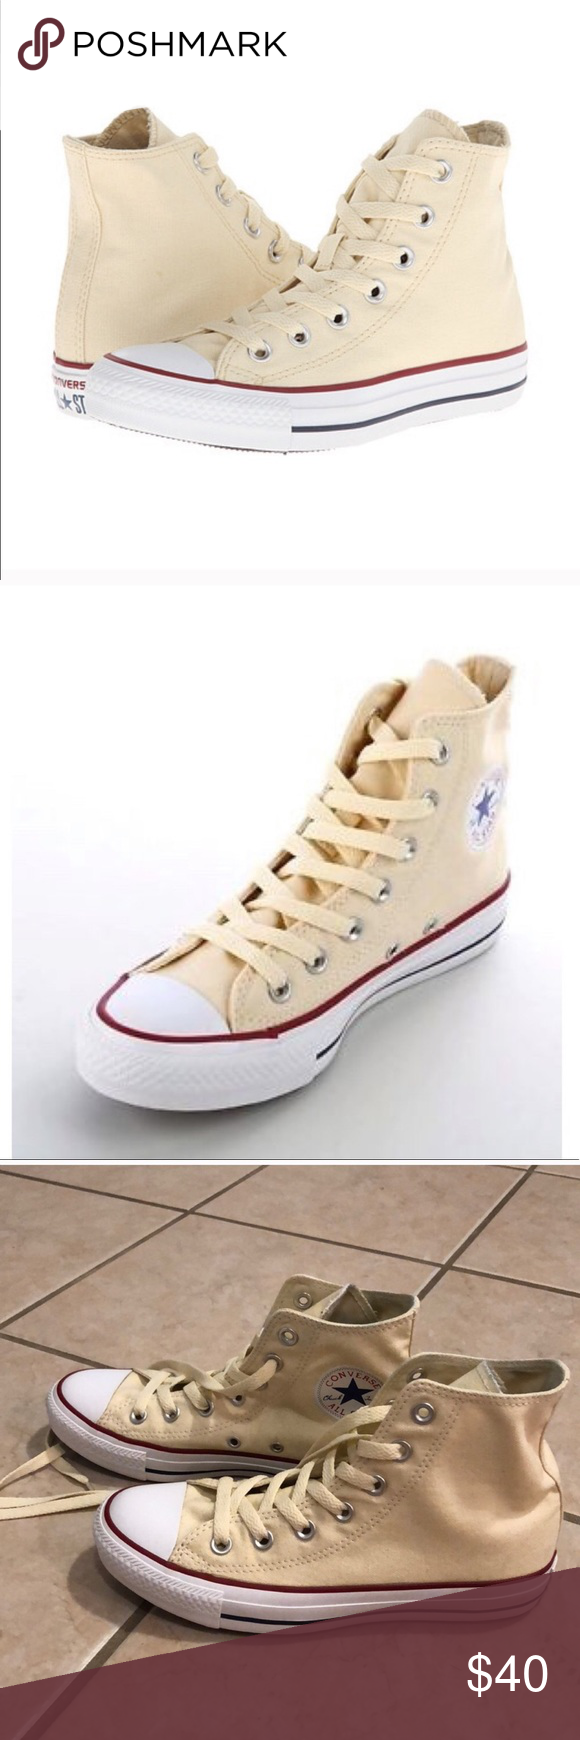 Converse high tops in Natural White